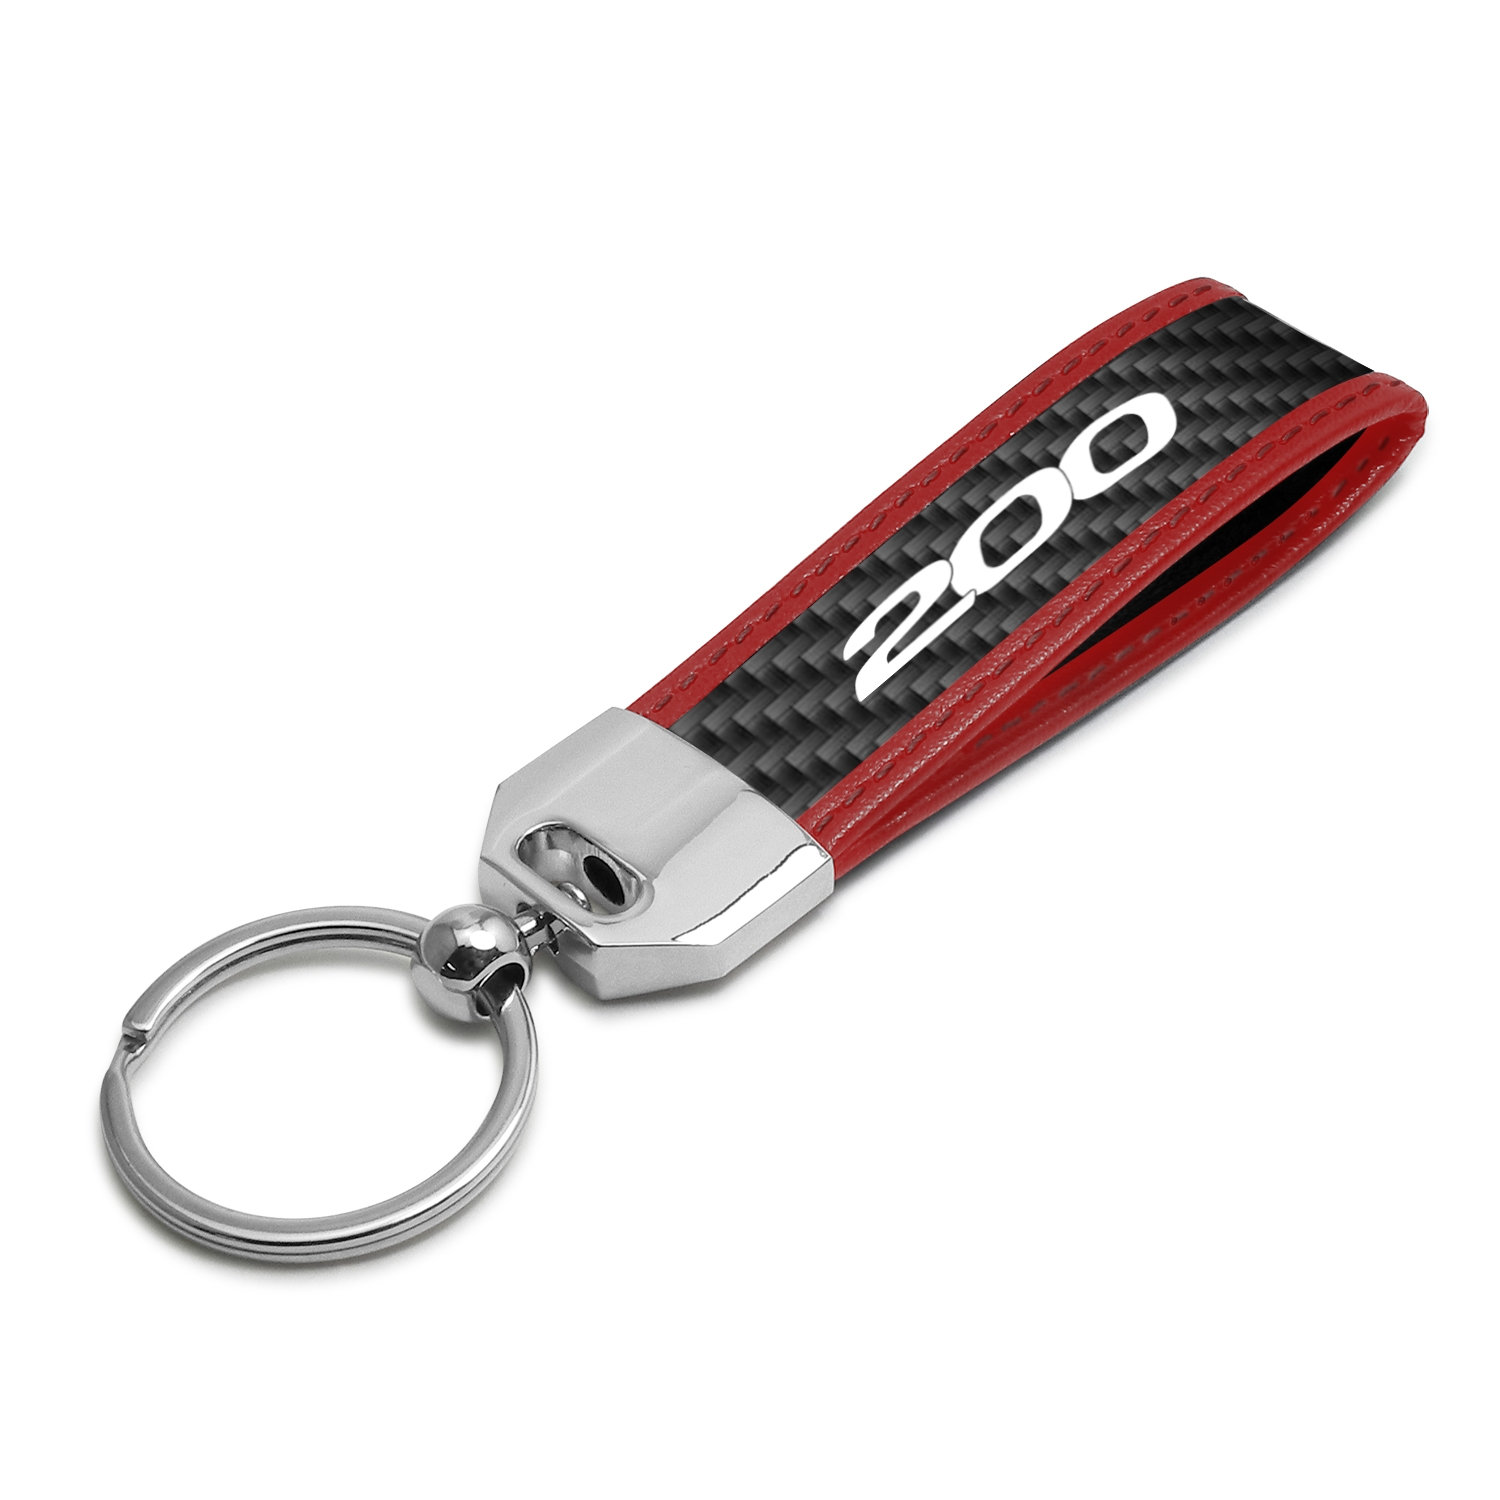 Chrysler 200 Real Carbon Fiber Strap Key Chain with Red Edge